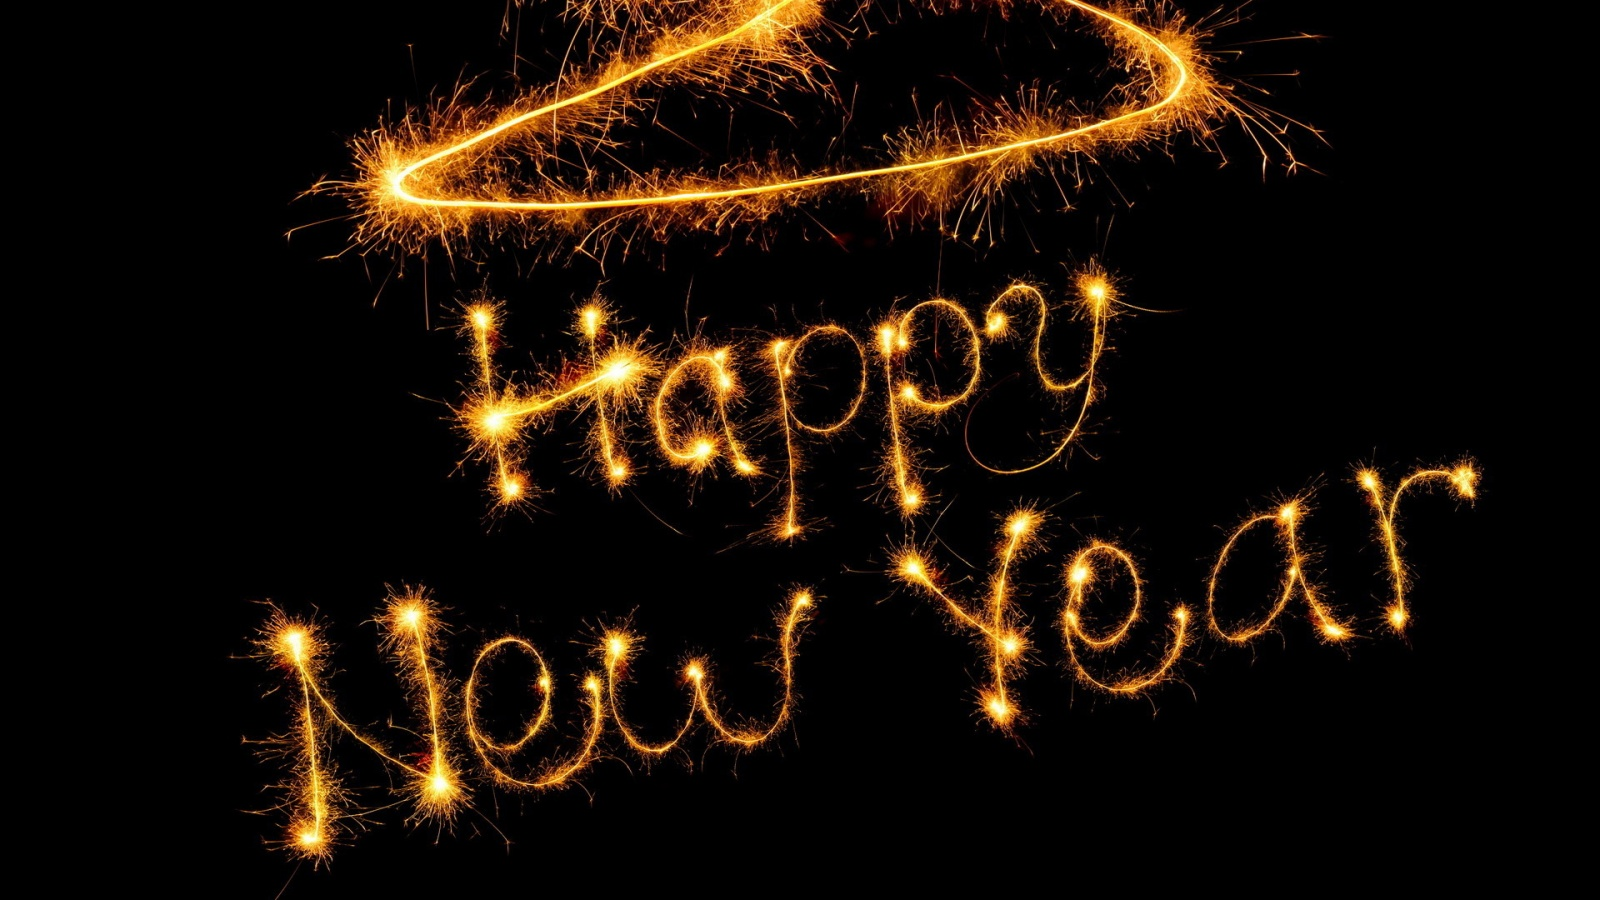 Abstract Free Happy New Year Wallpaper 2013 Wallpaper